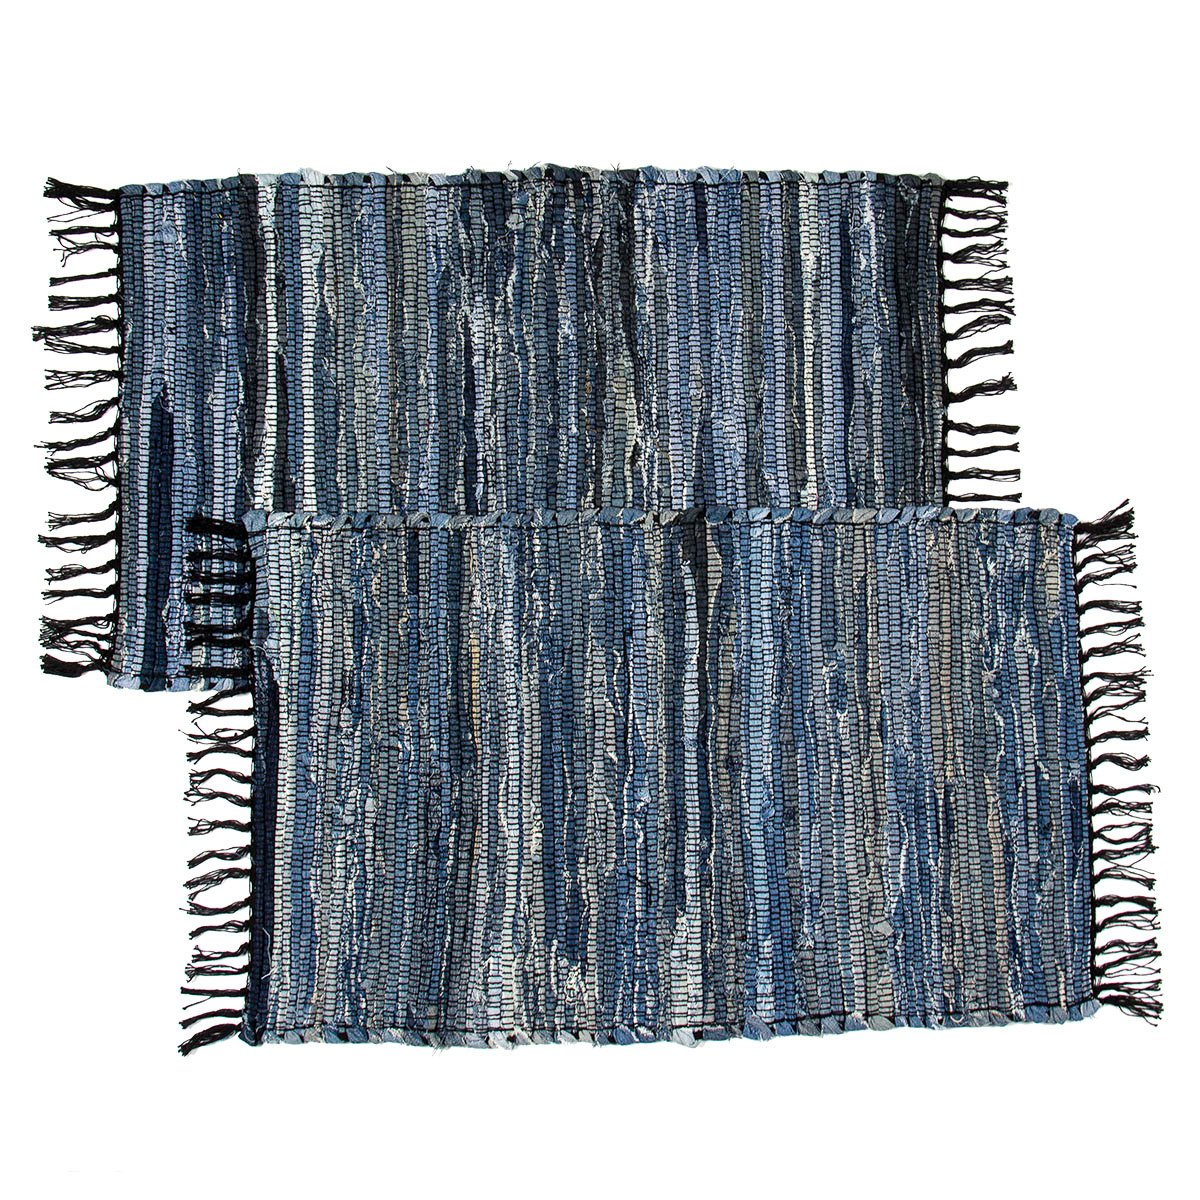 2 Denim Chindi Doorway Rag Rugs 100% Cotton Recycled Blue Jean Entryway Woven Mat Royal Collection